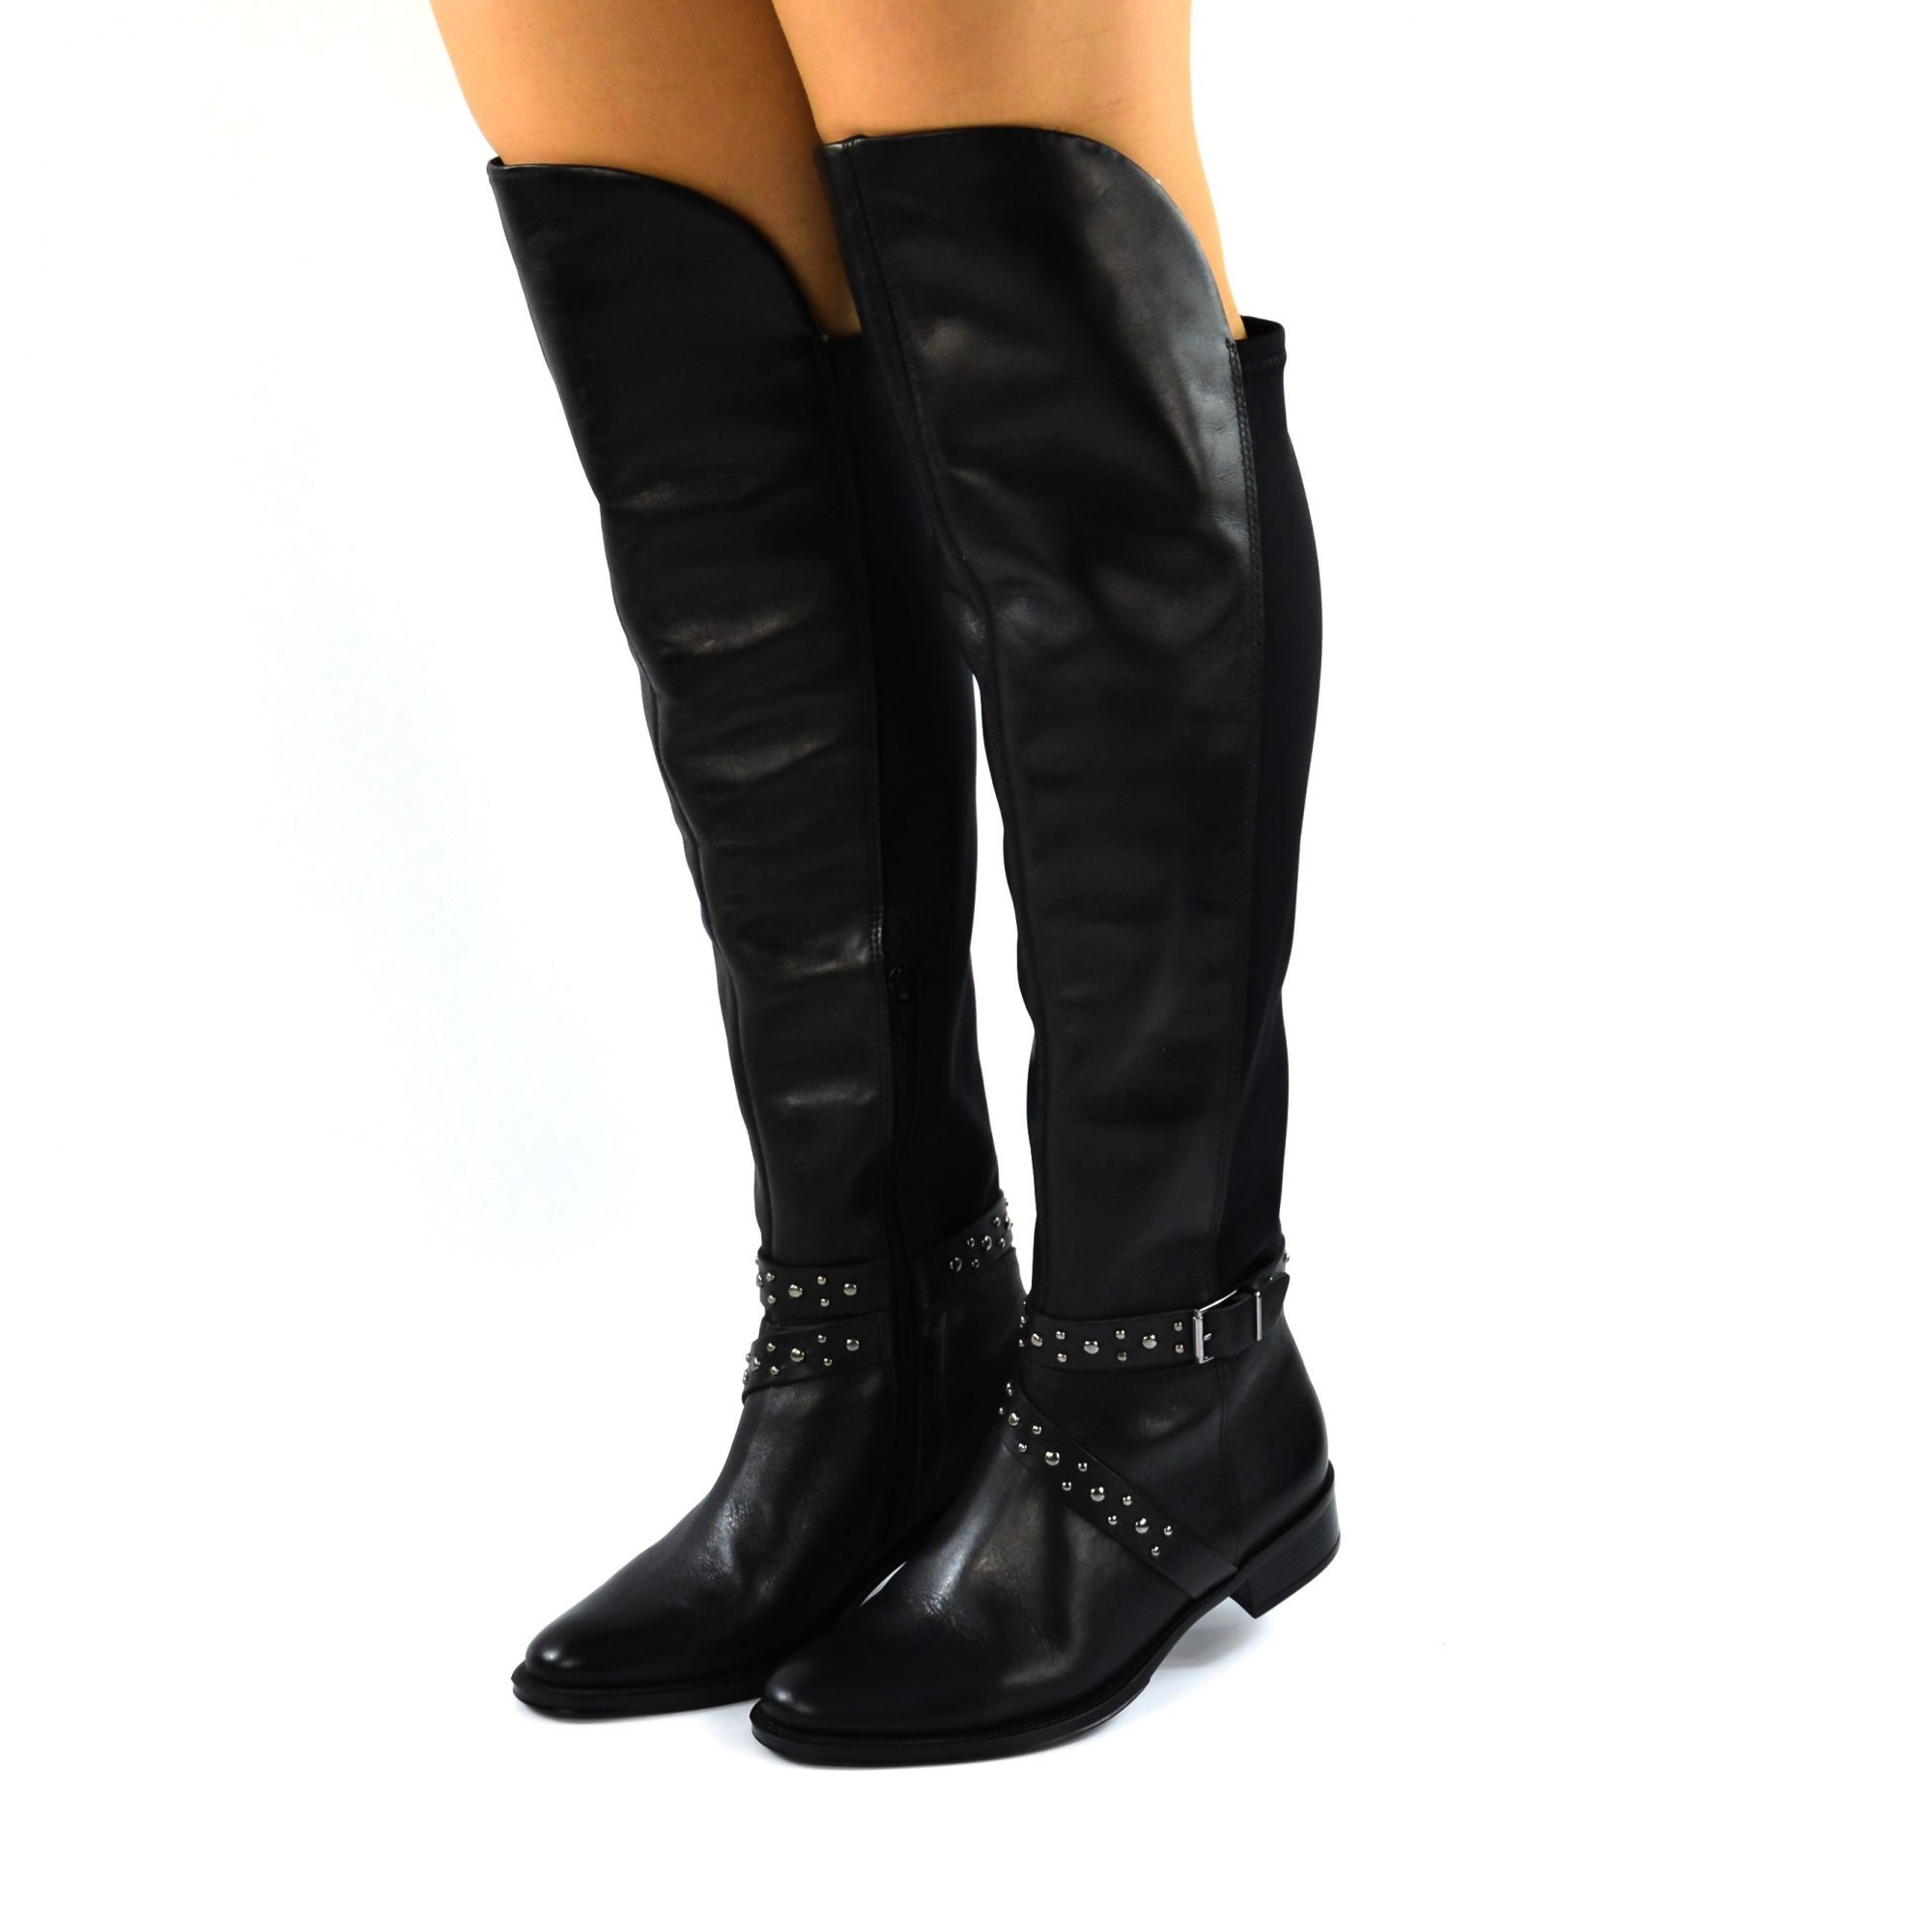 BOTA OVER THE KNEE RAMARIM 1652107 - 10774 - Morga Modas 17041492a4865